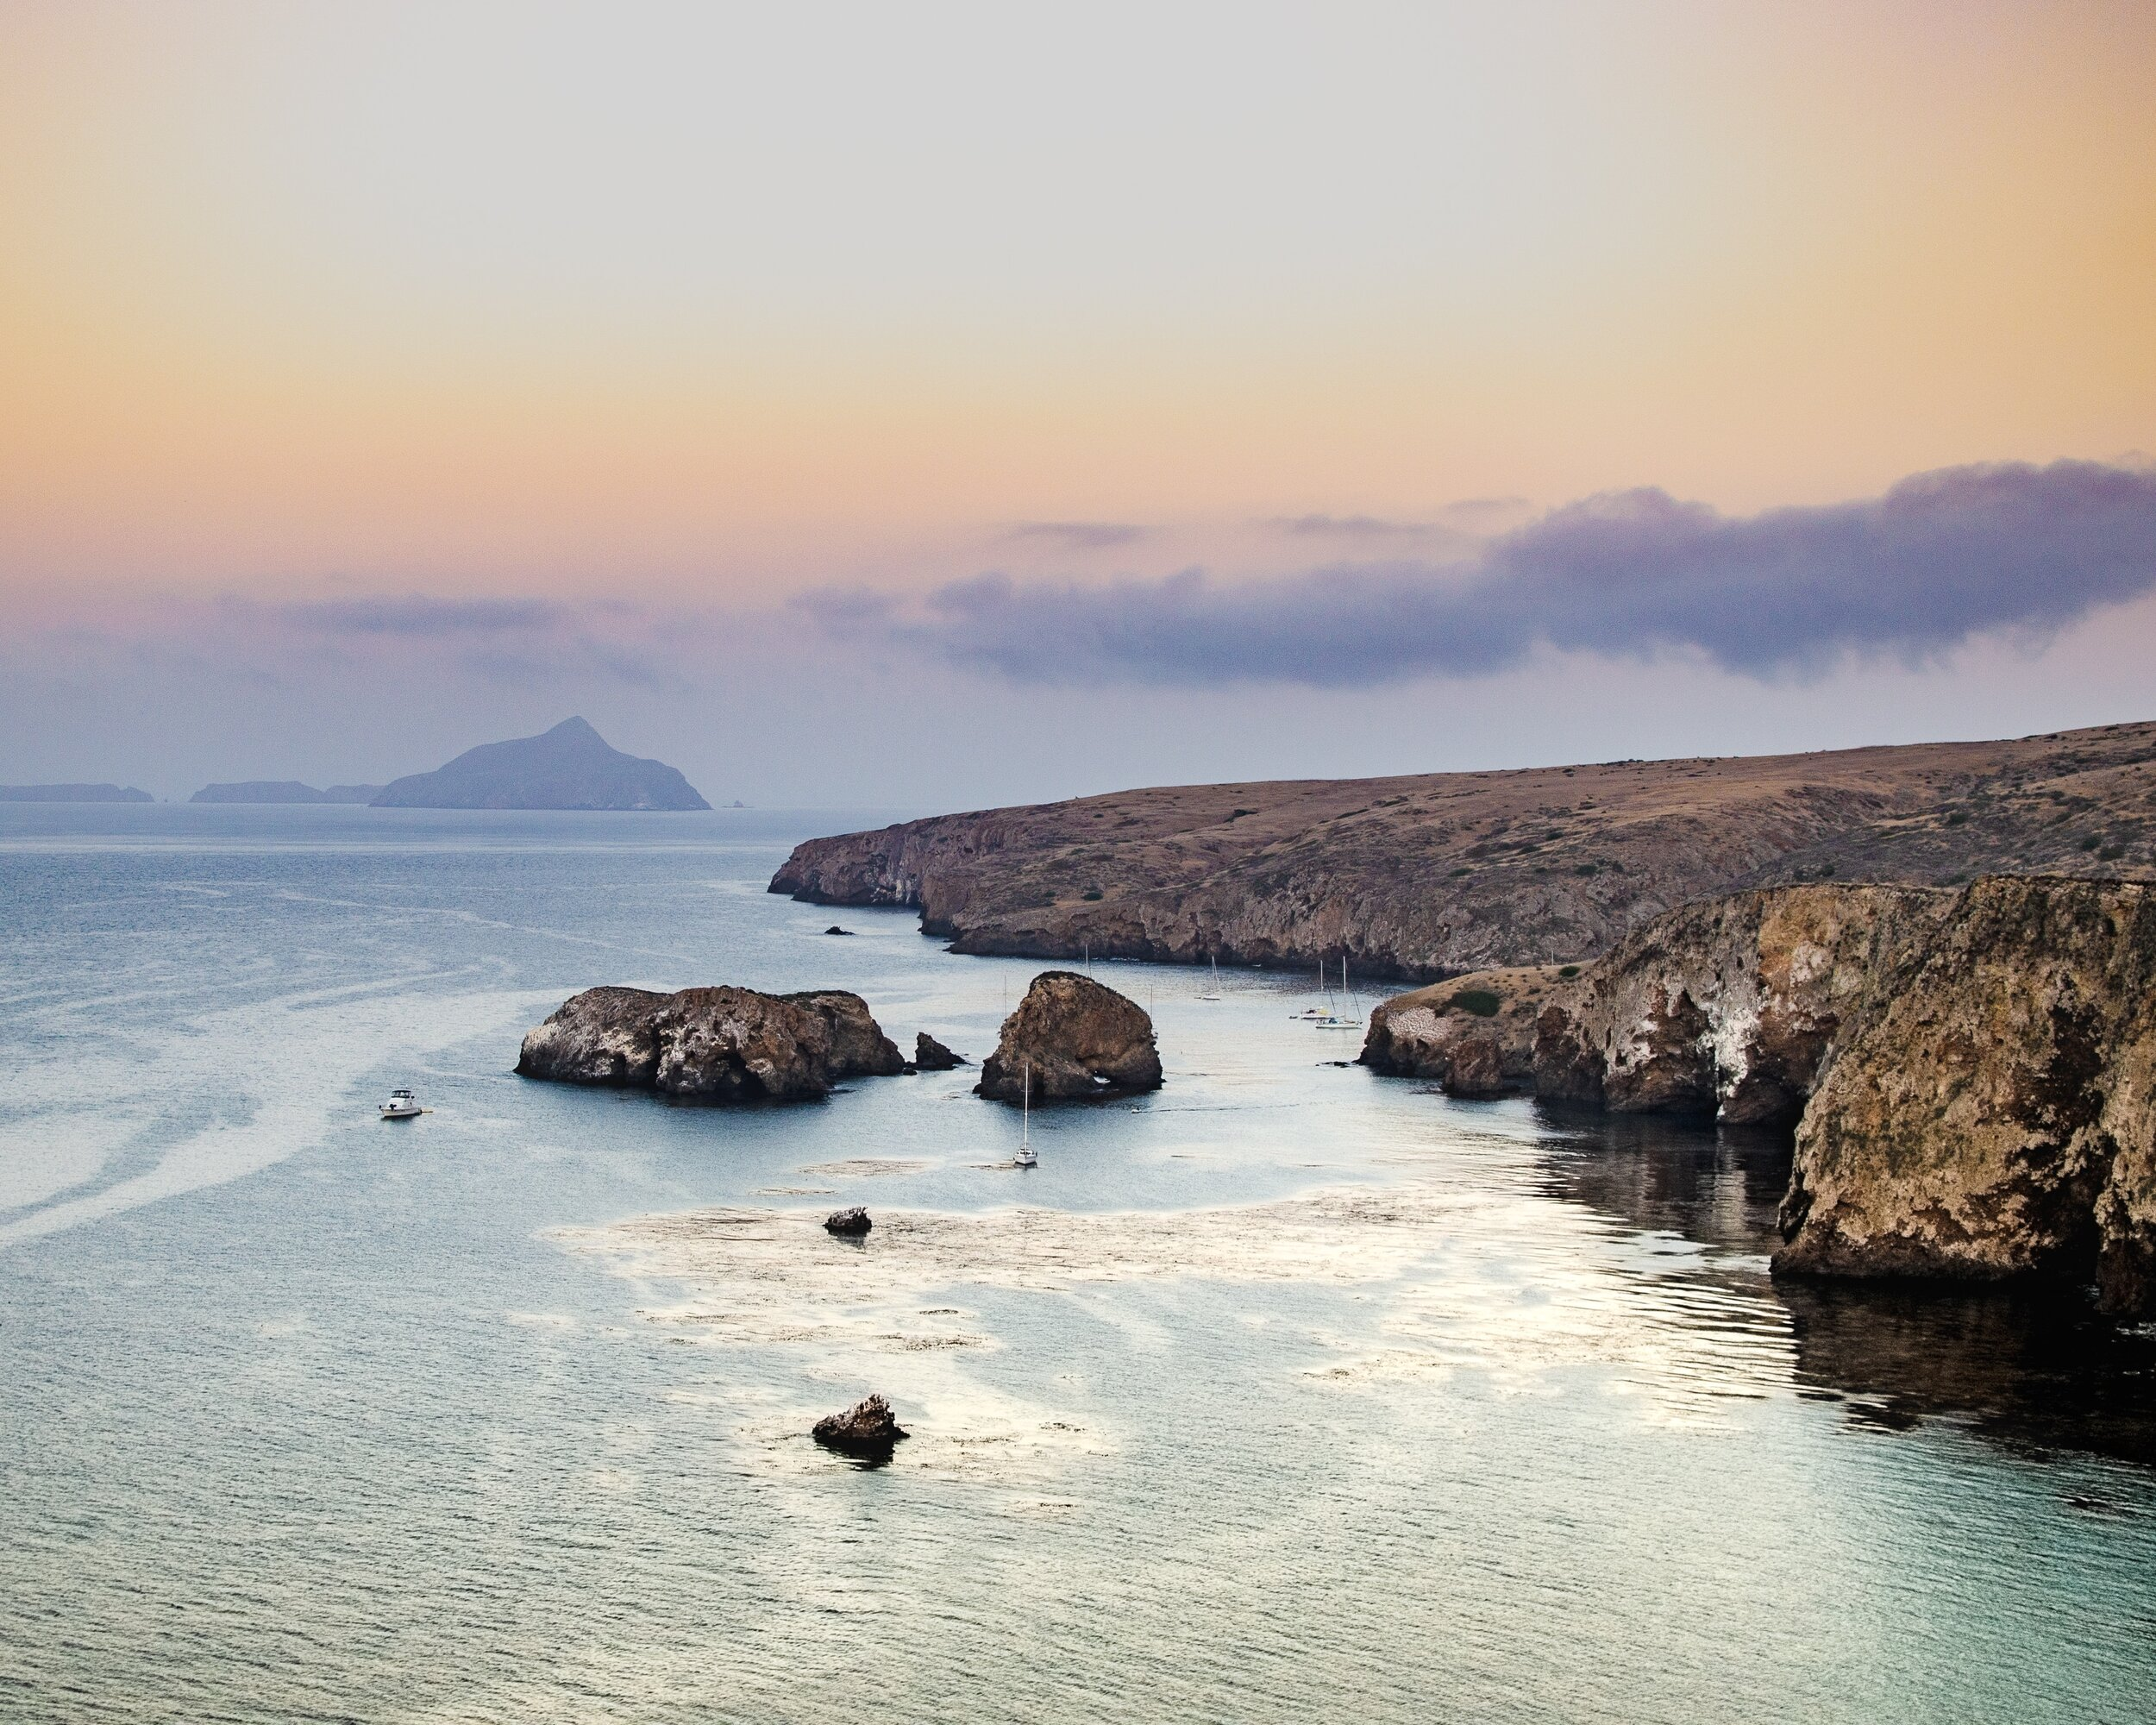 Channel Islands sailing - george-xistris.jpg